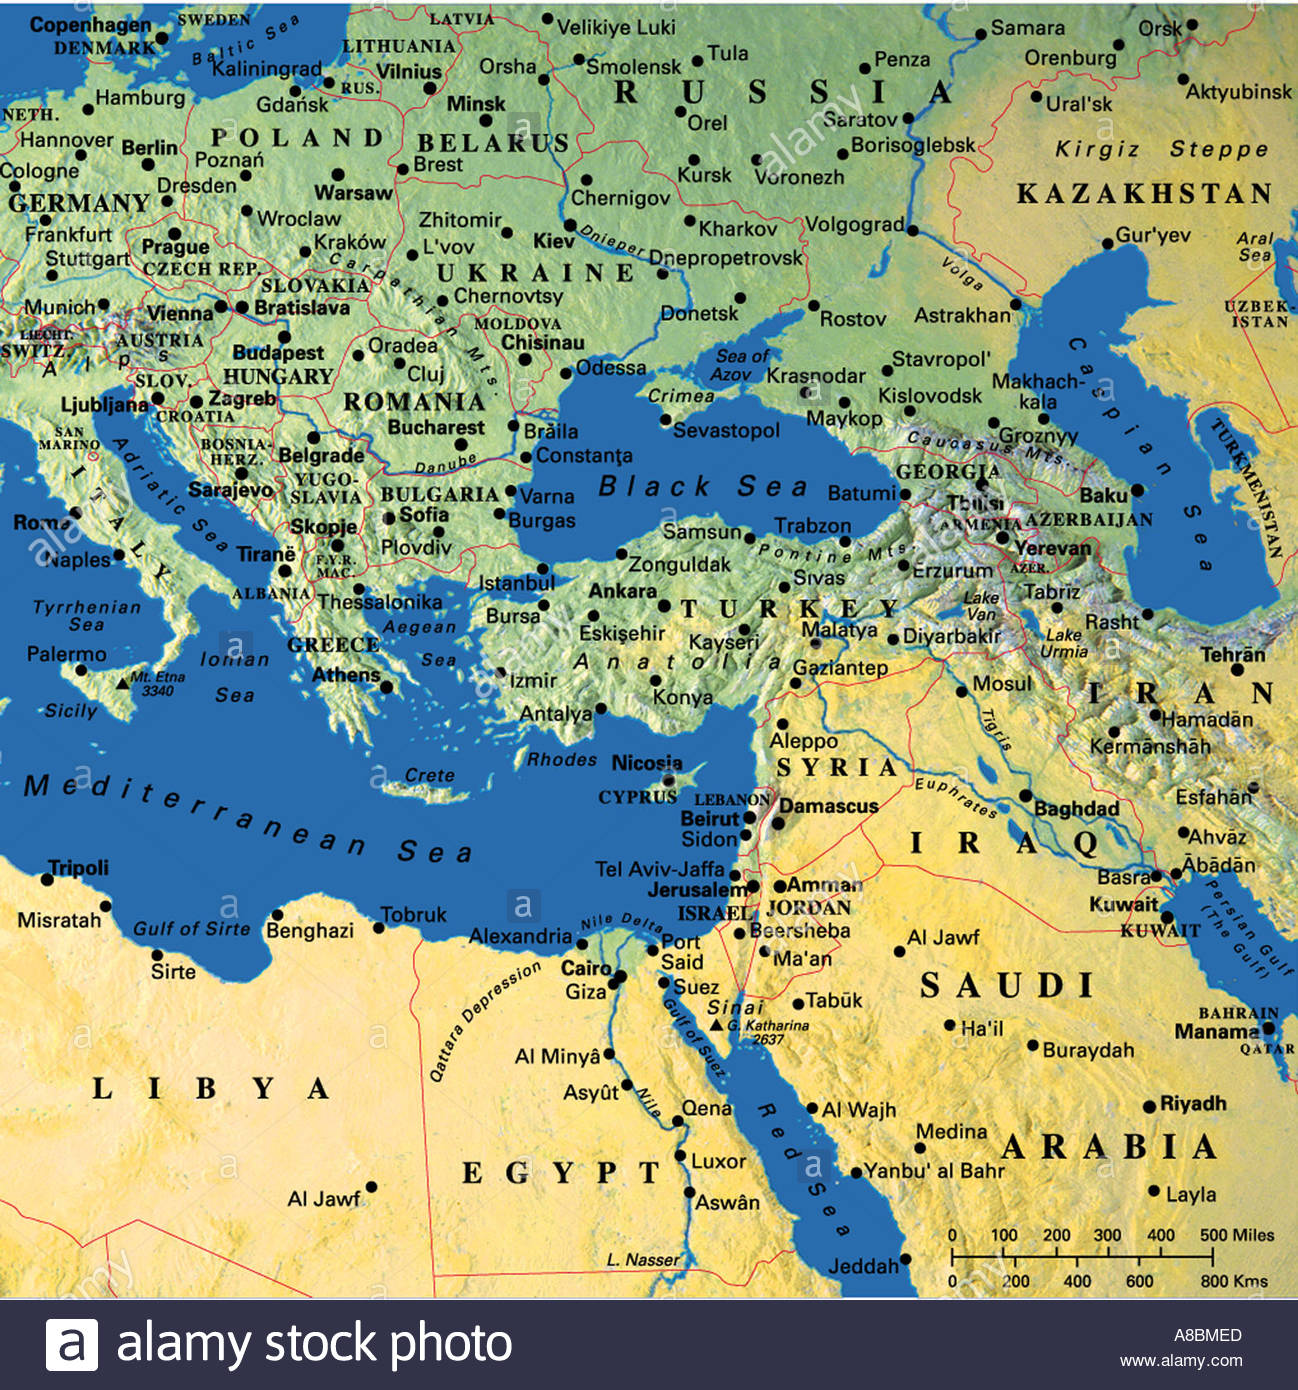 map maps Europe Middle East Saudi Arabia Stock Photo: 3934444 - Alamy